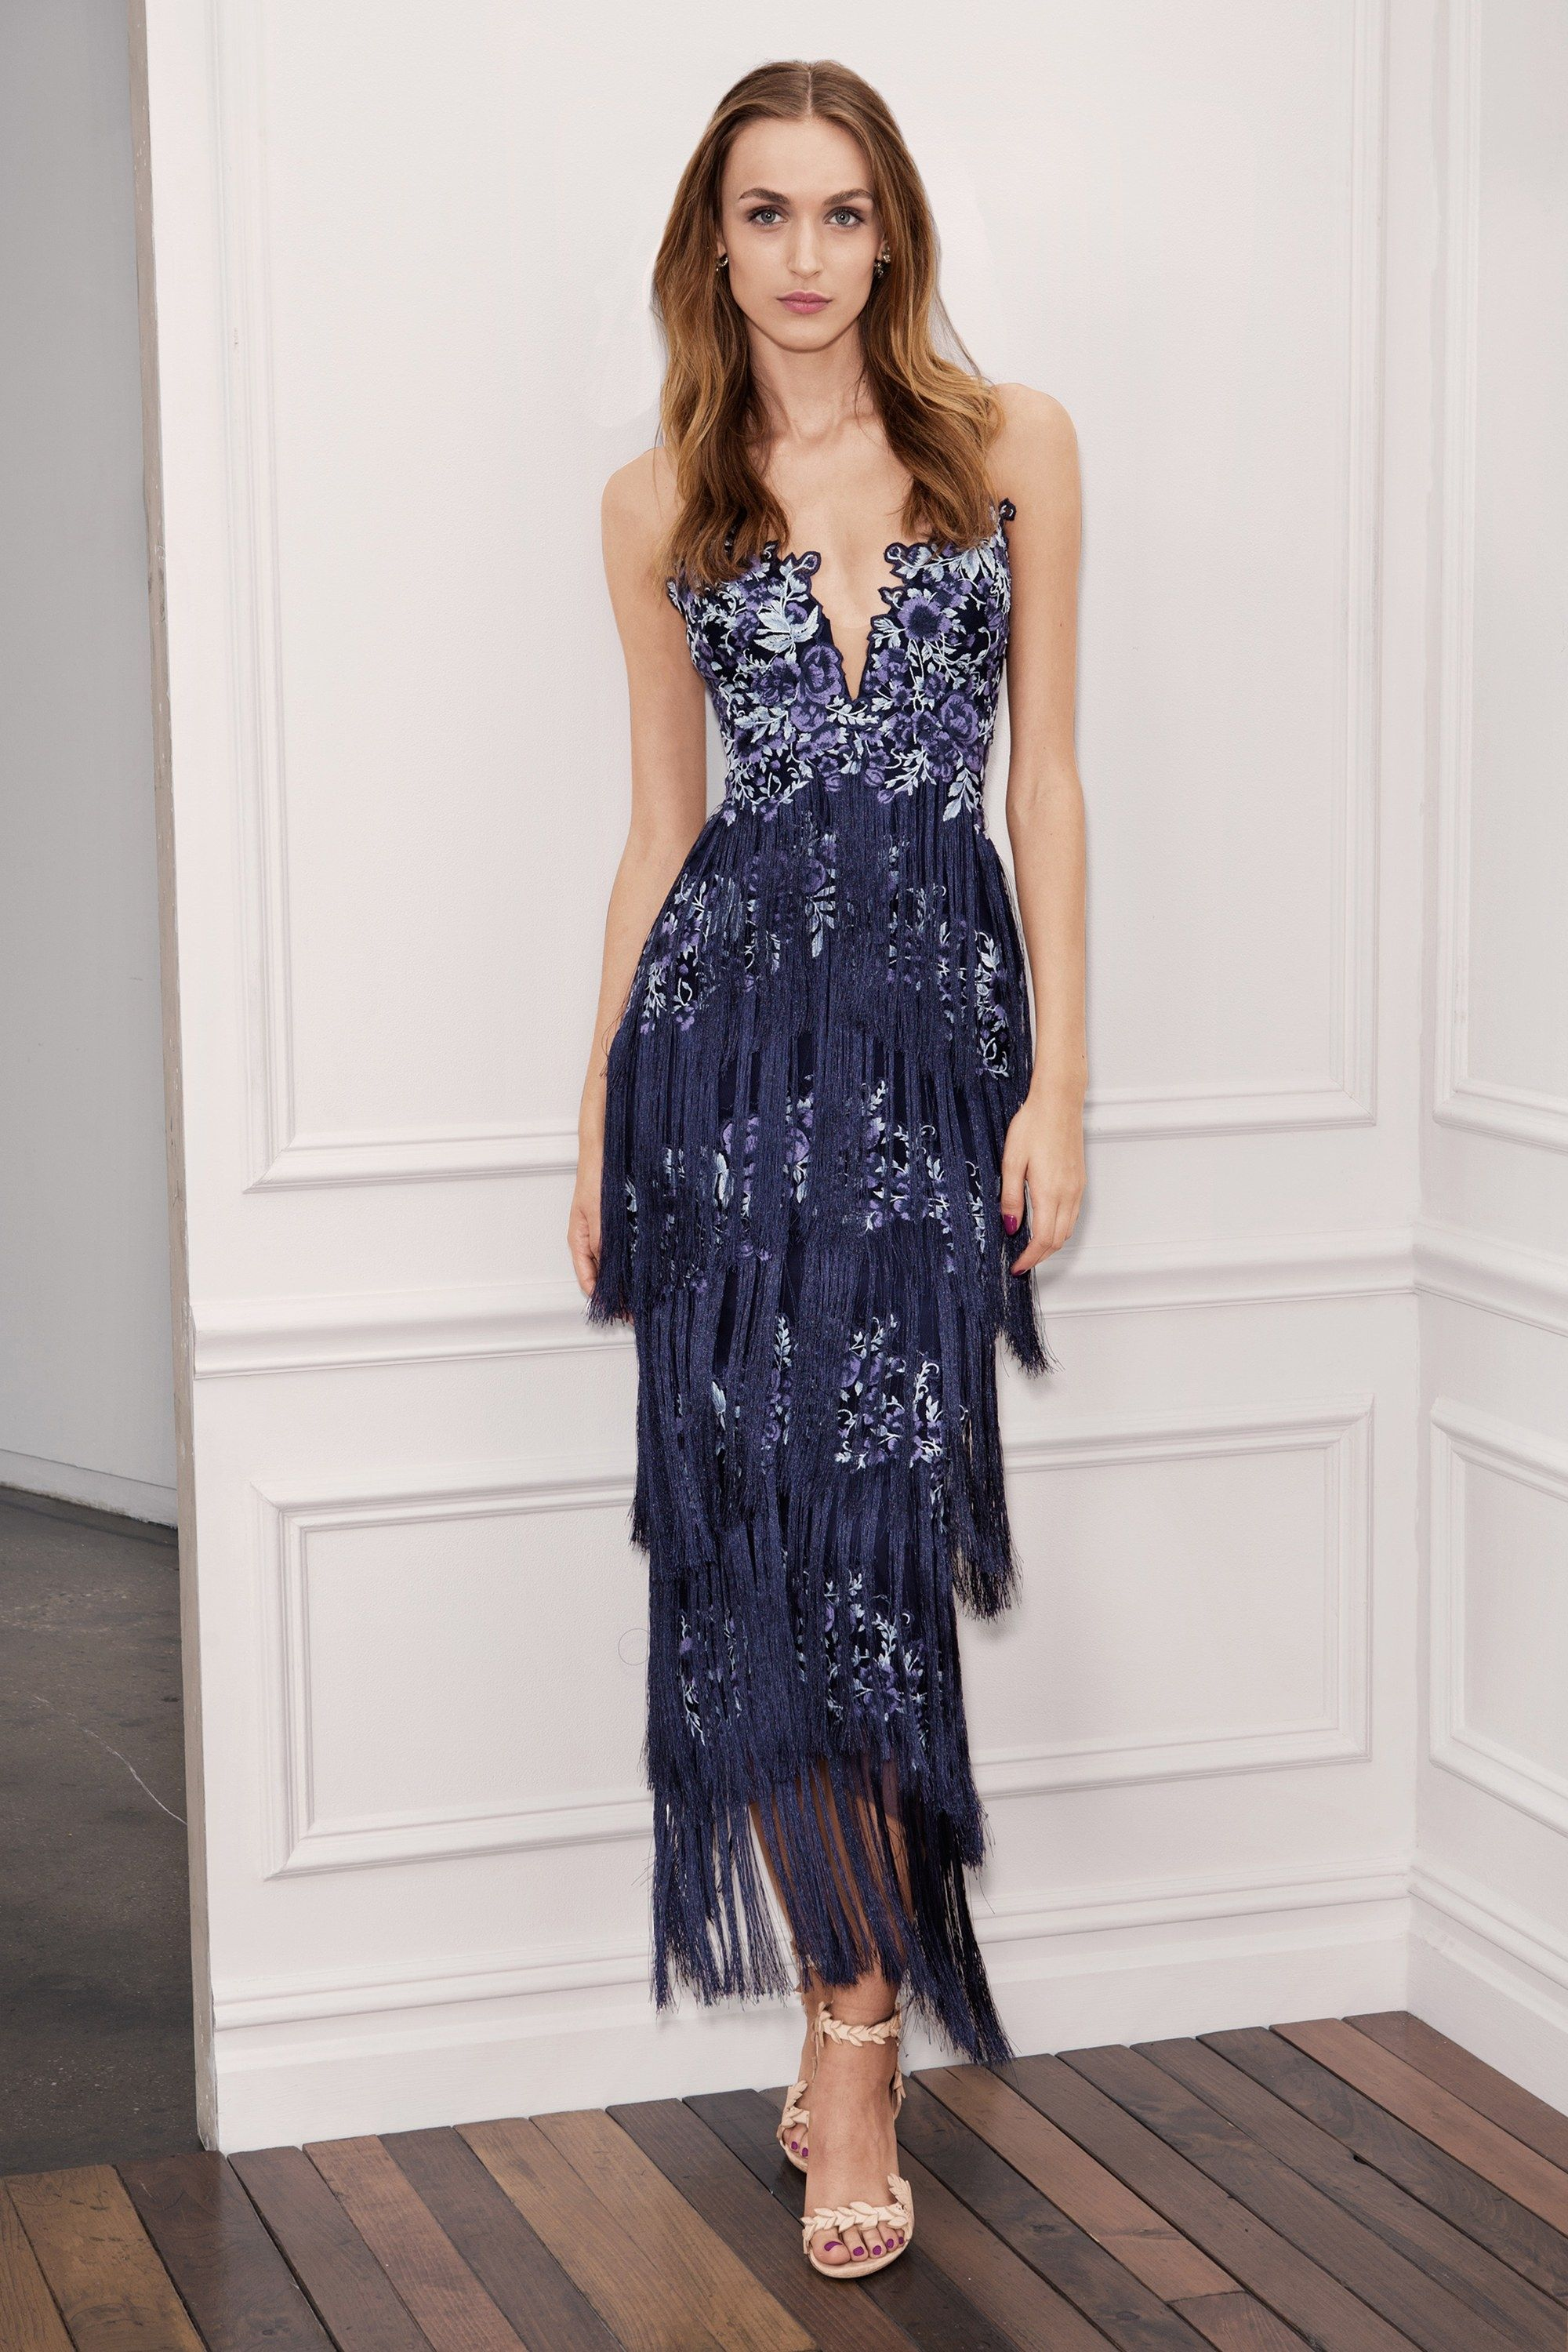 59c61adb1e MARCHESA NOTTE BLUE SLEEVELESS EMBROIDERED FRINGE GOWN. #marchesanotte  #cloth #